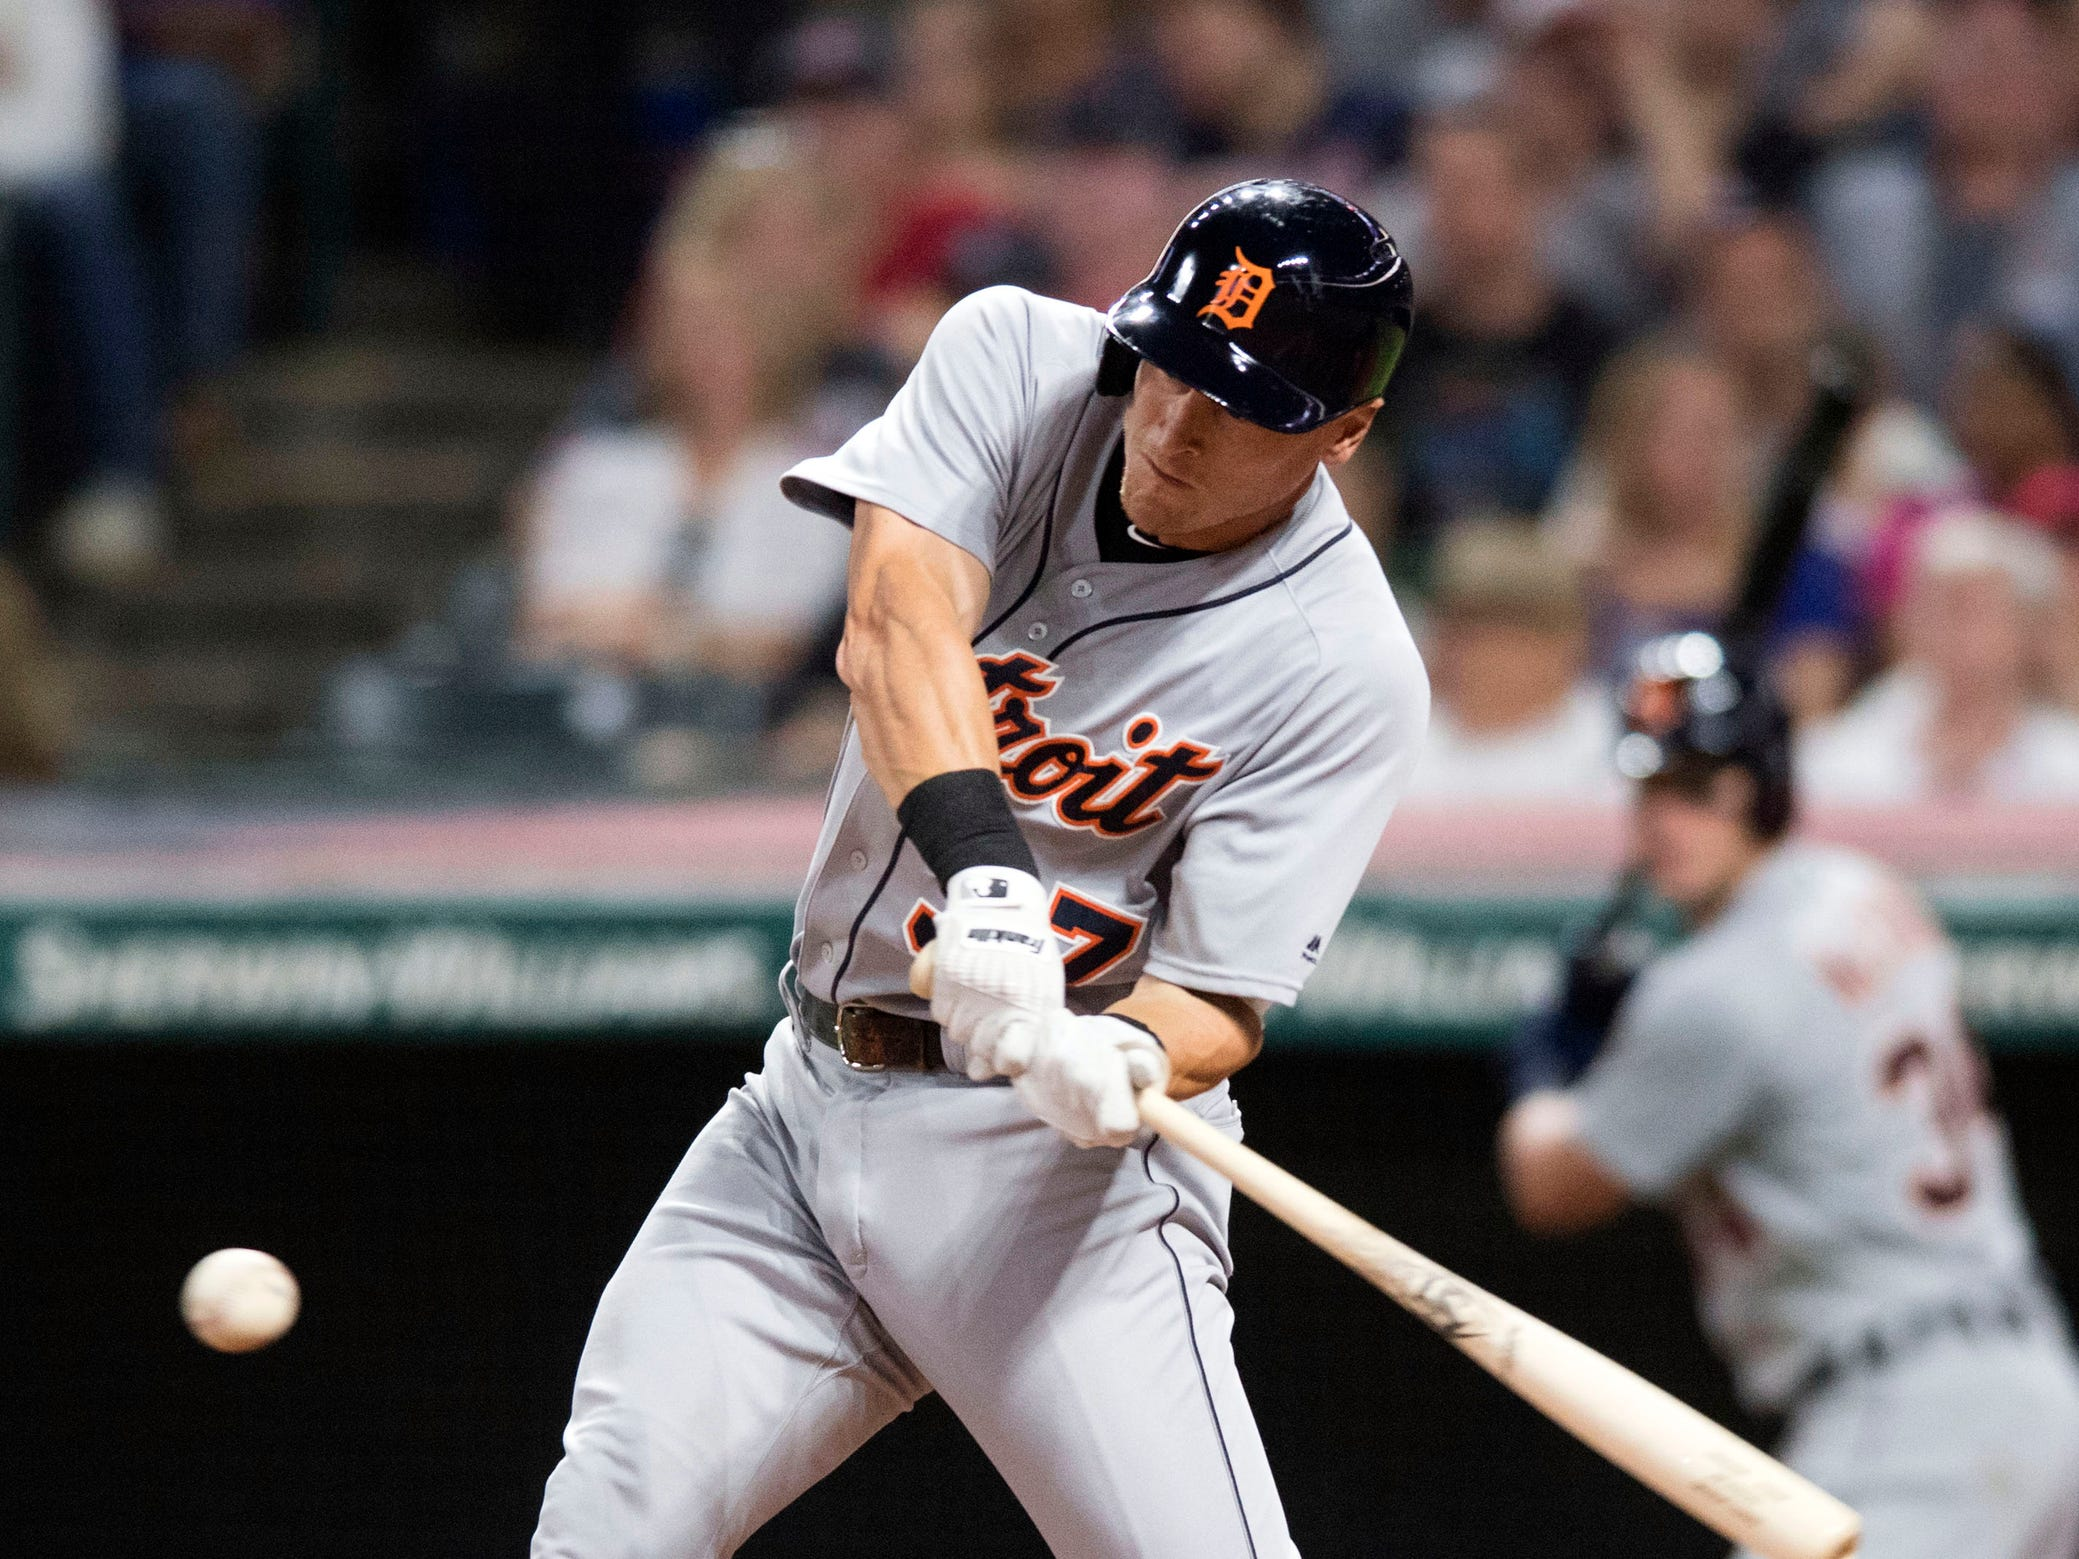 Detroit Tigers first baseman Jim Adduci hits a double during the fourth inning against the Cleveland Indians at Progressive Field, Friday, Sept. 14, 2018, in Cleveland.